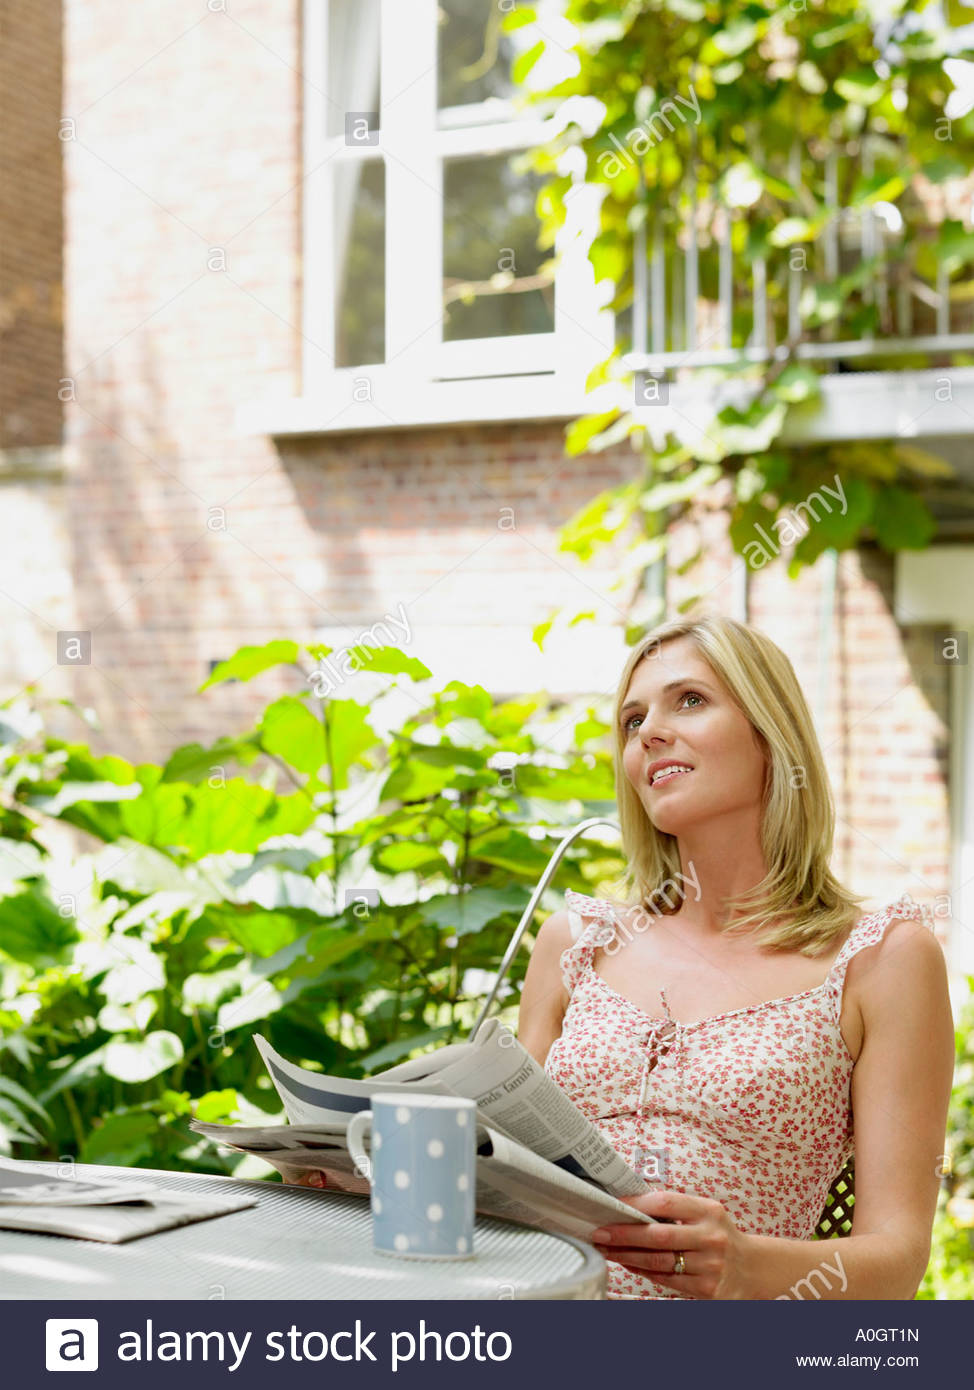 Woman in garden with newspaper - Stock Image